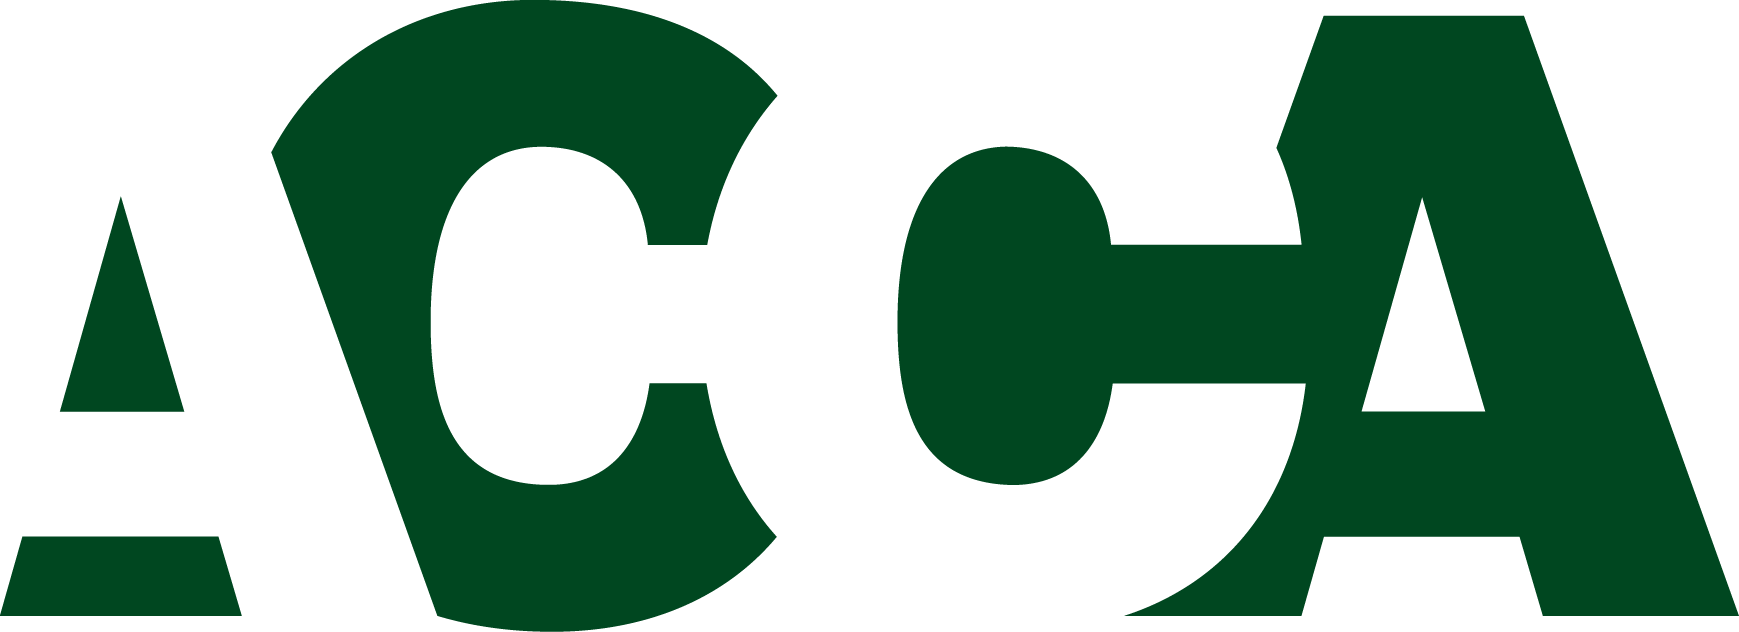 Acca_logo_Green_Transparent.png